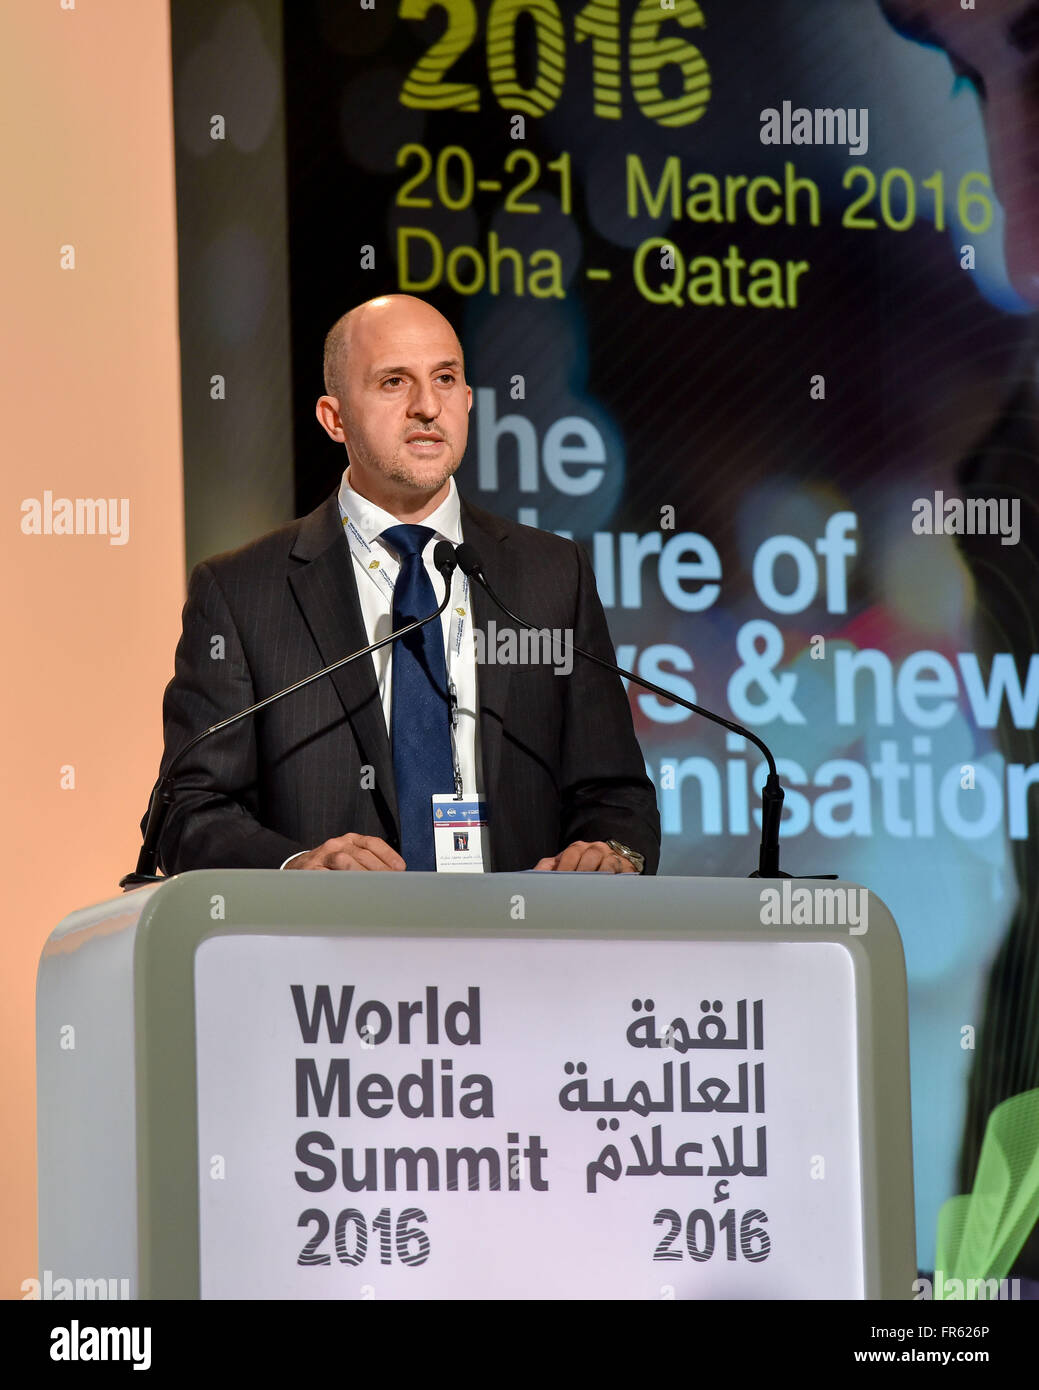 Doha, Qatar. 21st Mar, 2016. Arafat Shoukri, Manager of the Executive Committee of the World Media Summit Doha, Stock Photo